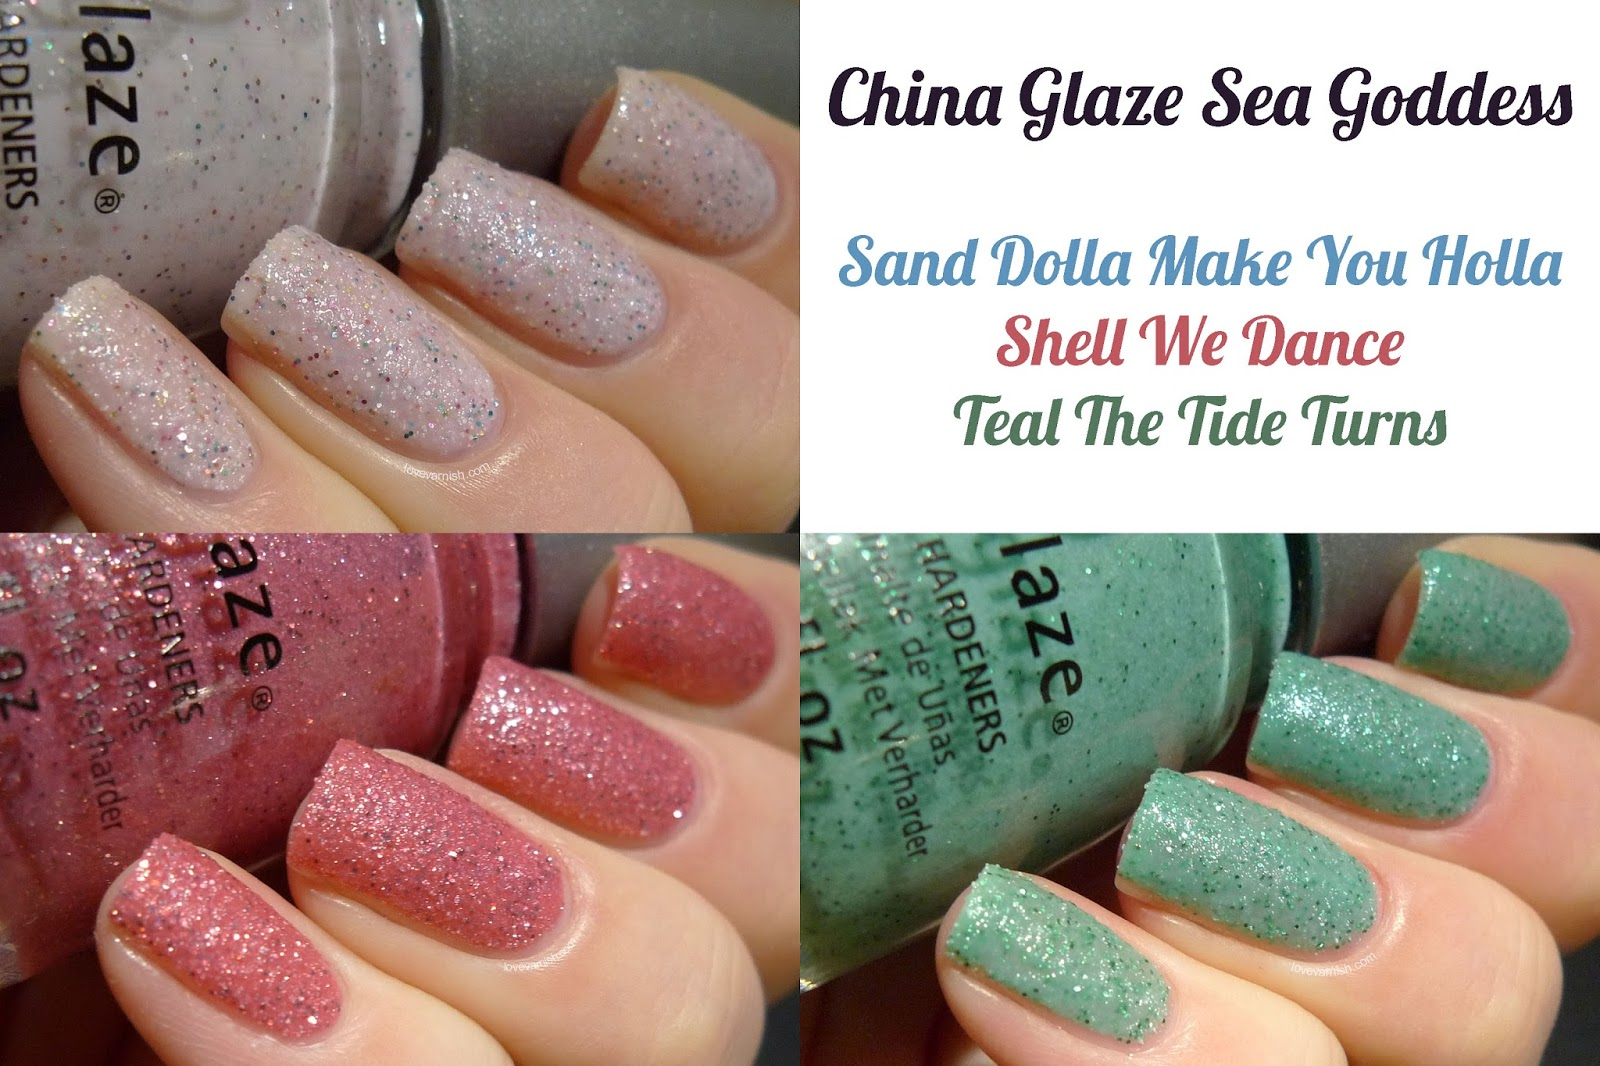 China Glaze Sea Goddess texture nail polish collage